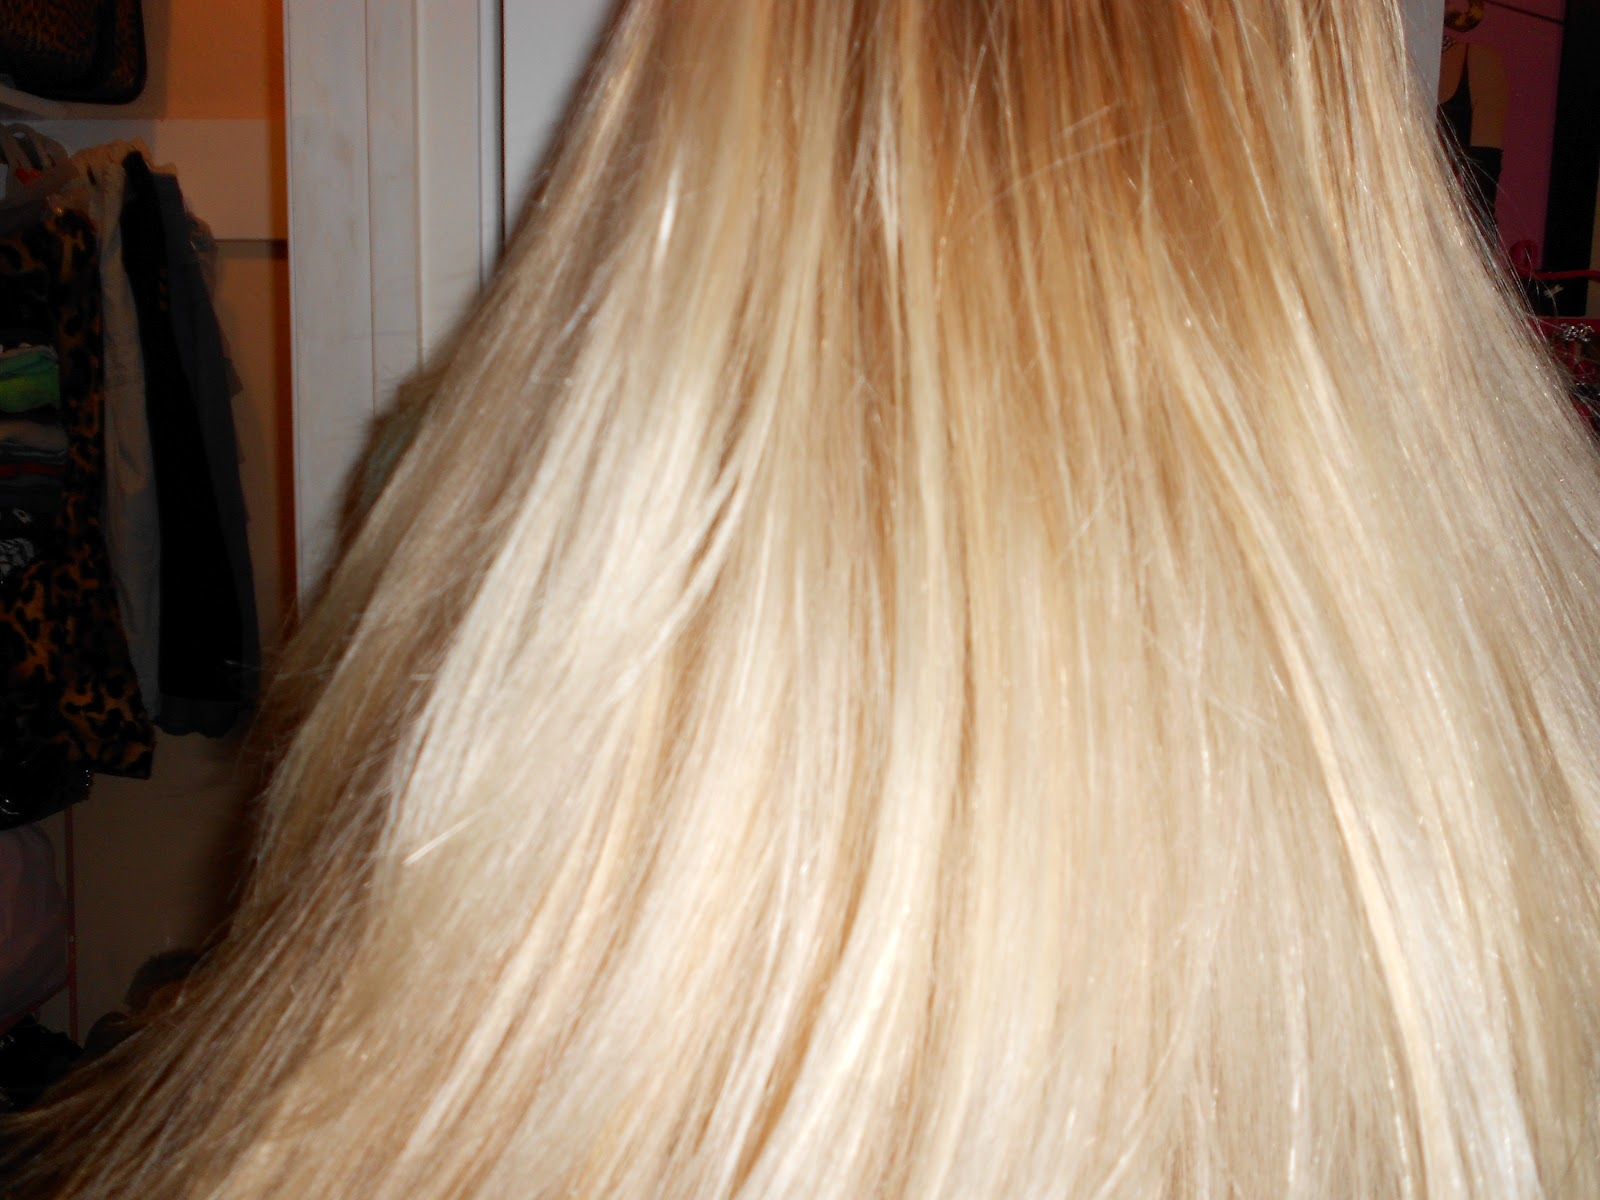 Amy beths garnier nutrisse color foam review when my roots started showingi wasnt sure what i was going to doe last time i went to my hair salon to get a cutcolorandshampoo i ended up coming nvjuhfo Gallery